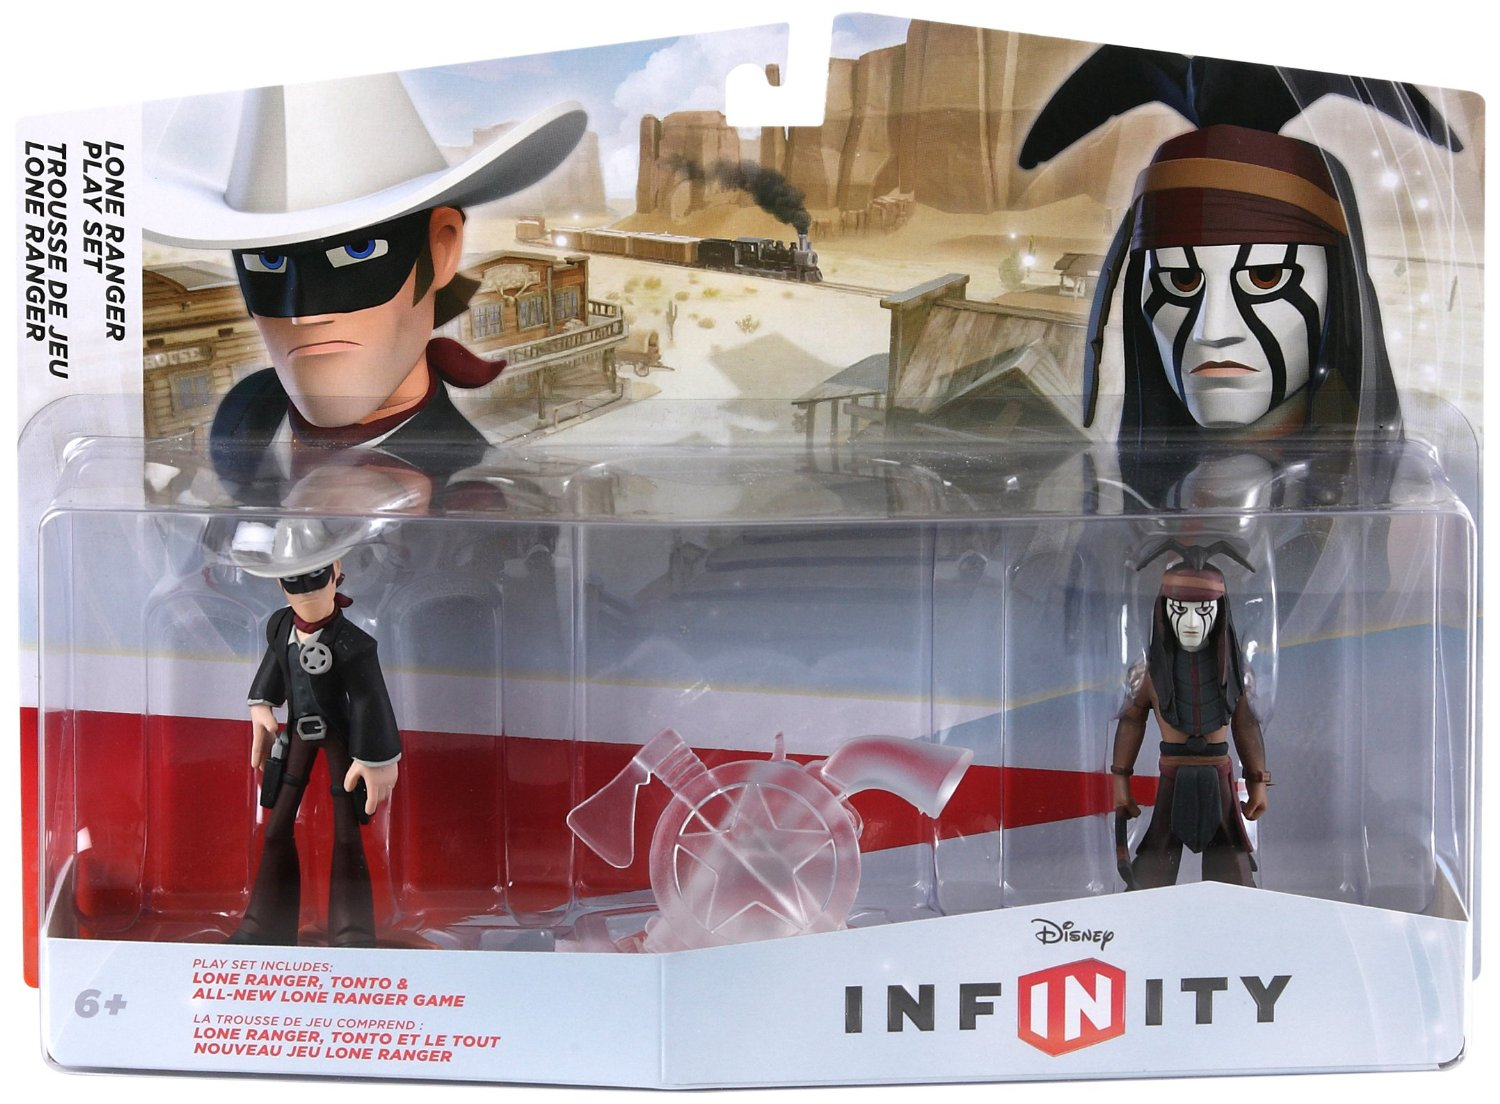 infinity lone ranger Disney Infinity Play Sets Just $19.99 (reg. $34.99)